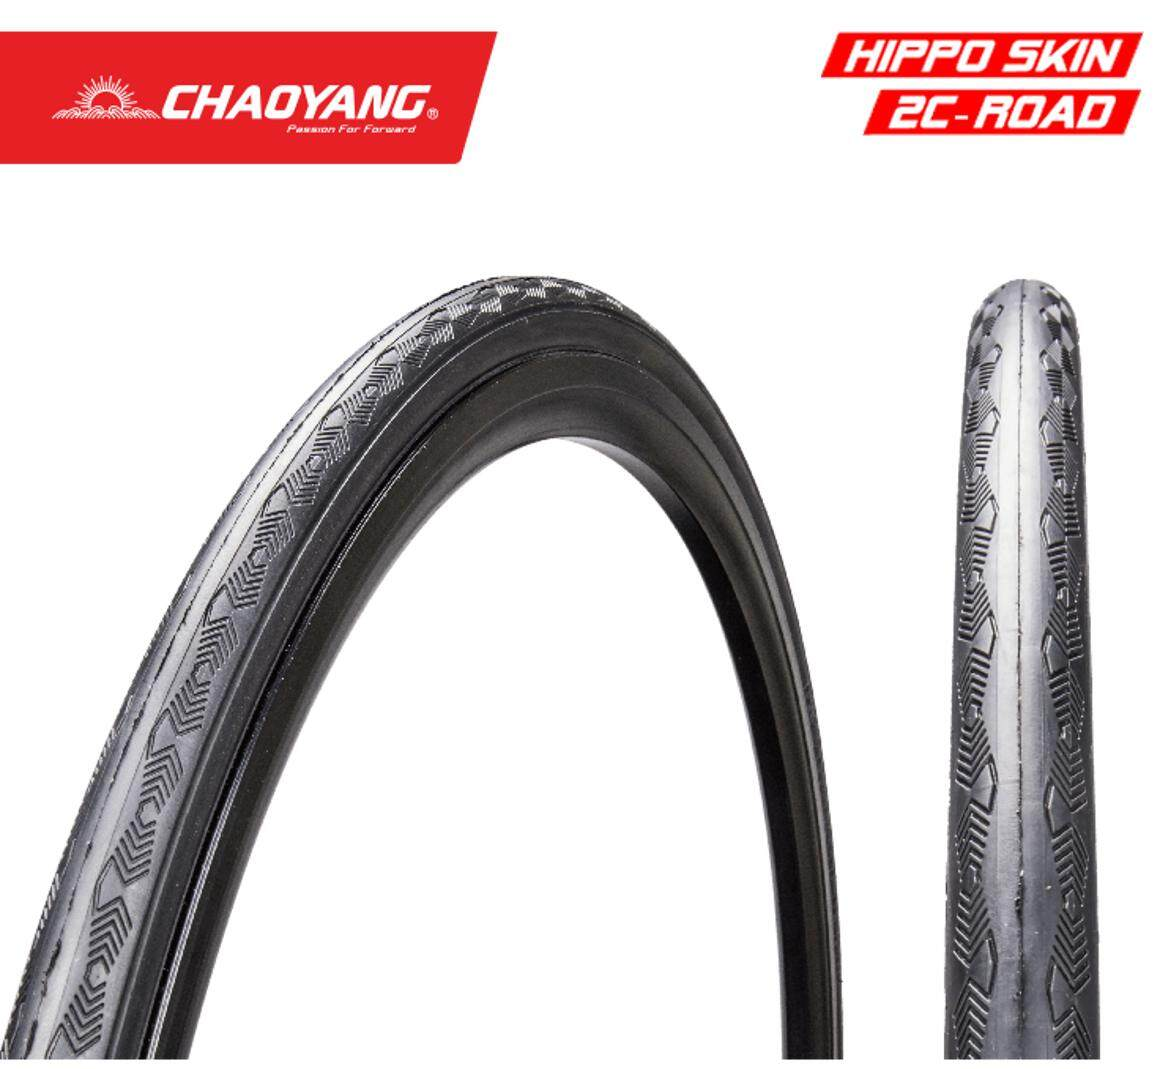 1x CHAOYANG Attack Pard 700x25 HippoSkin 30Tpi Road Bike Bicycle Tyre [W311123] ยางรถจักรยาน